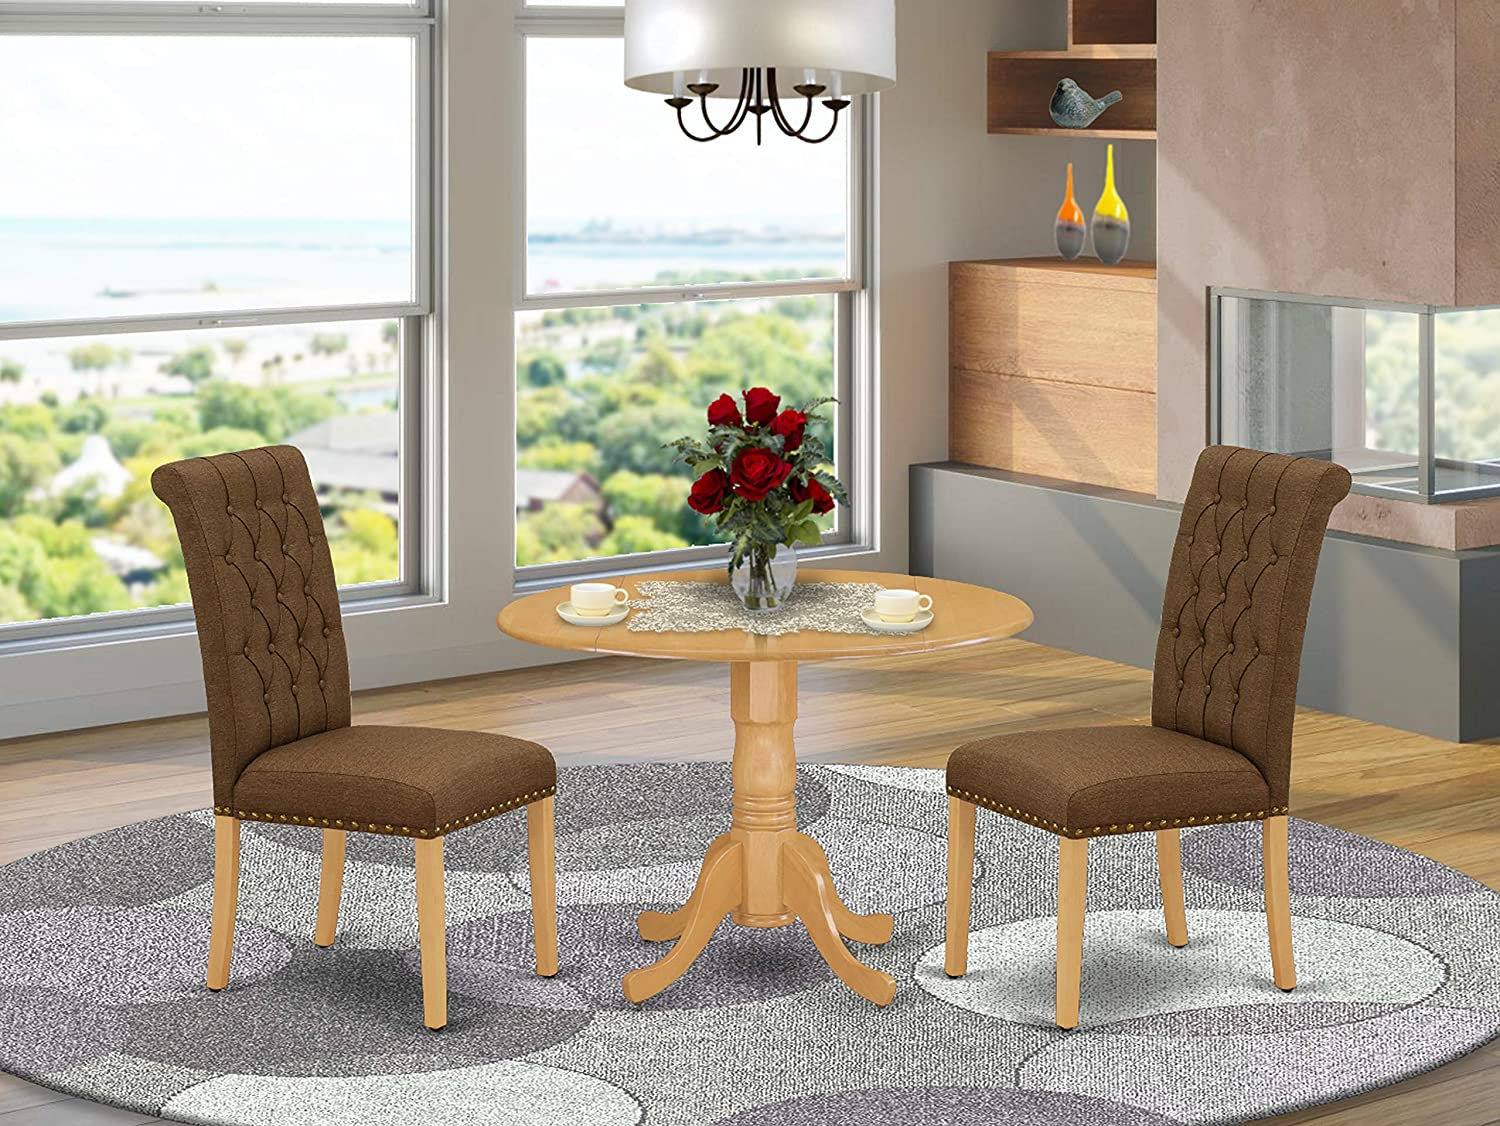 East West Furniture 3Pc Dinette Set Includes a Rounded Kitchen Table with Drop Leaves and Two Parson Chairs with Dark Coffee Fabric, Oak Finish